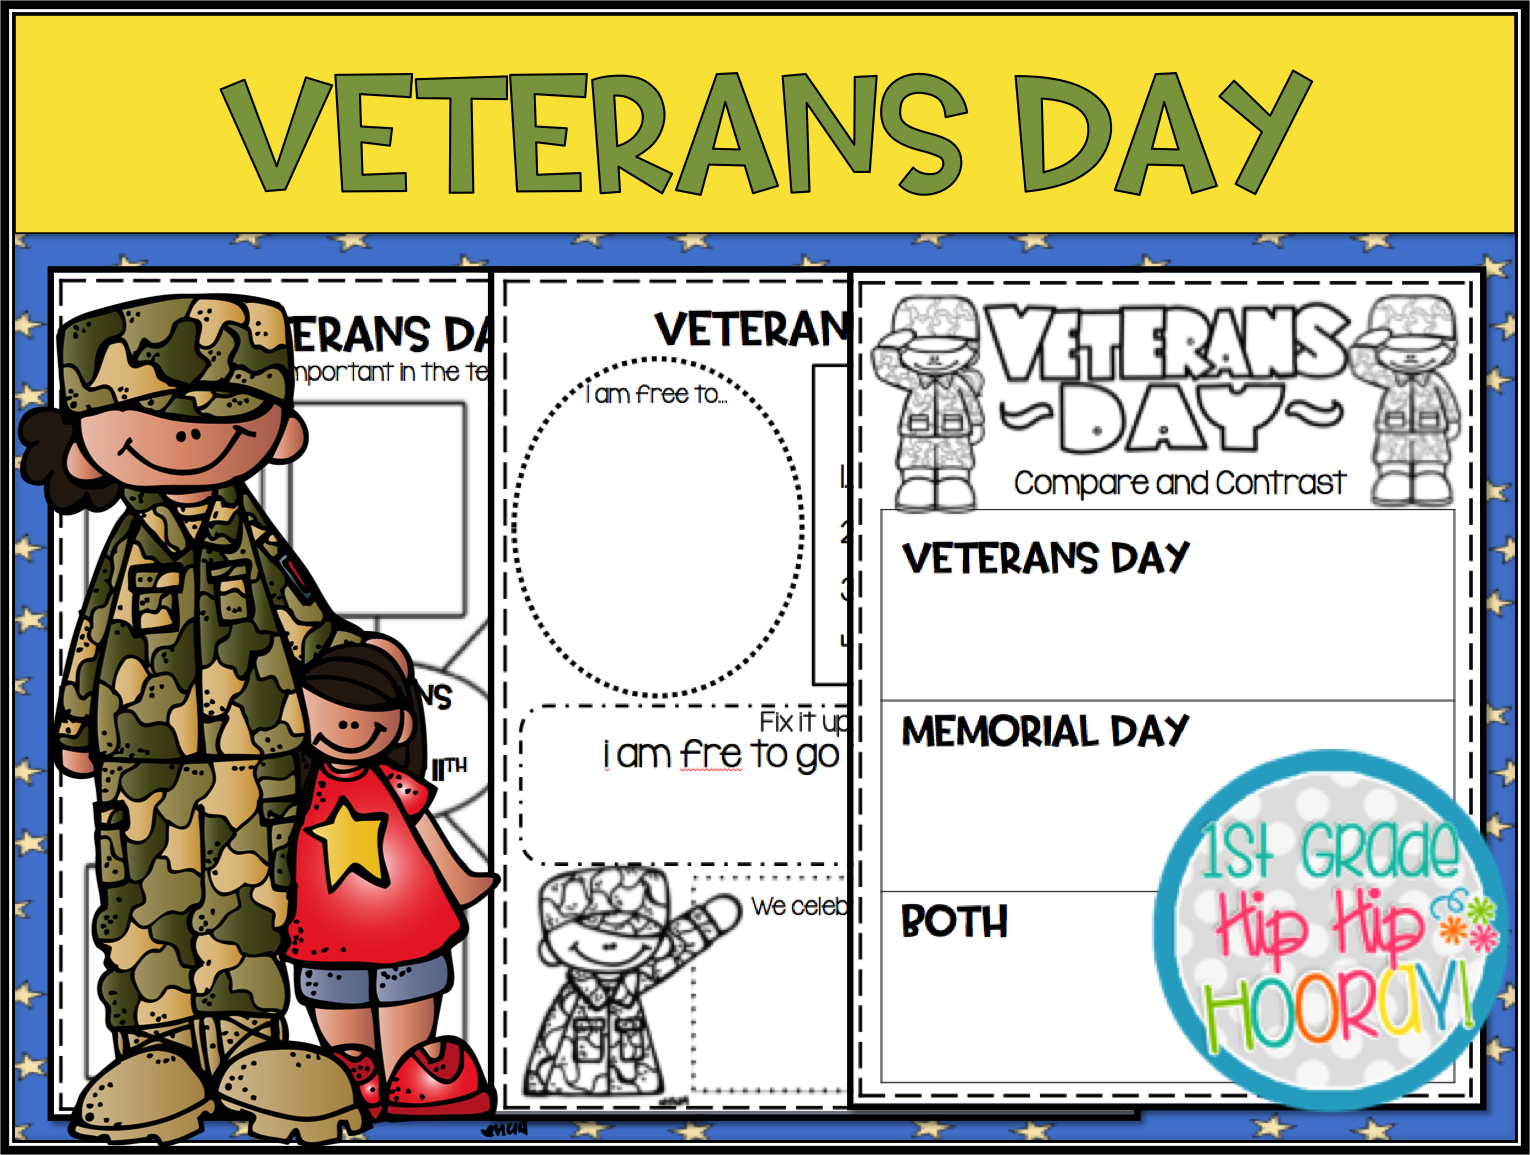 Veterans Day Worksheet For 1st Grade   Printable Worksheets and Activities  for Teachers [ 1155 x 1530 Pixel ]